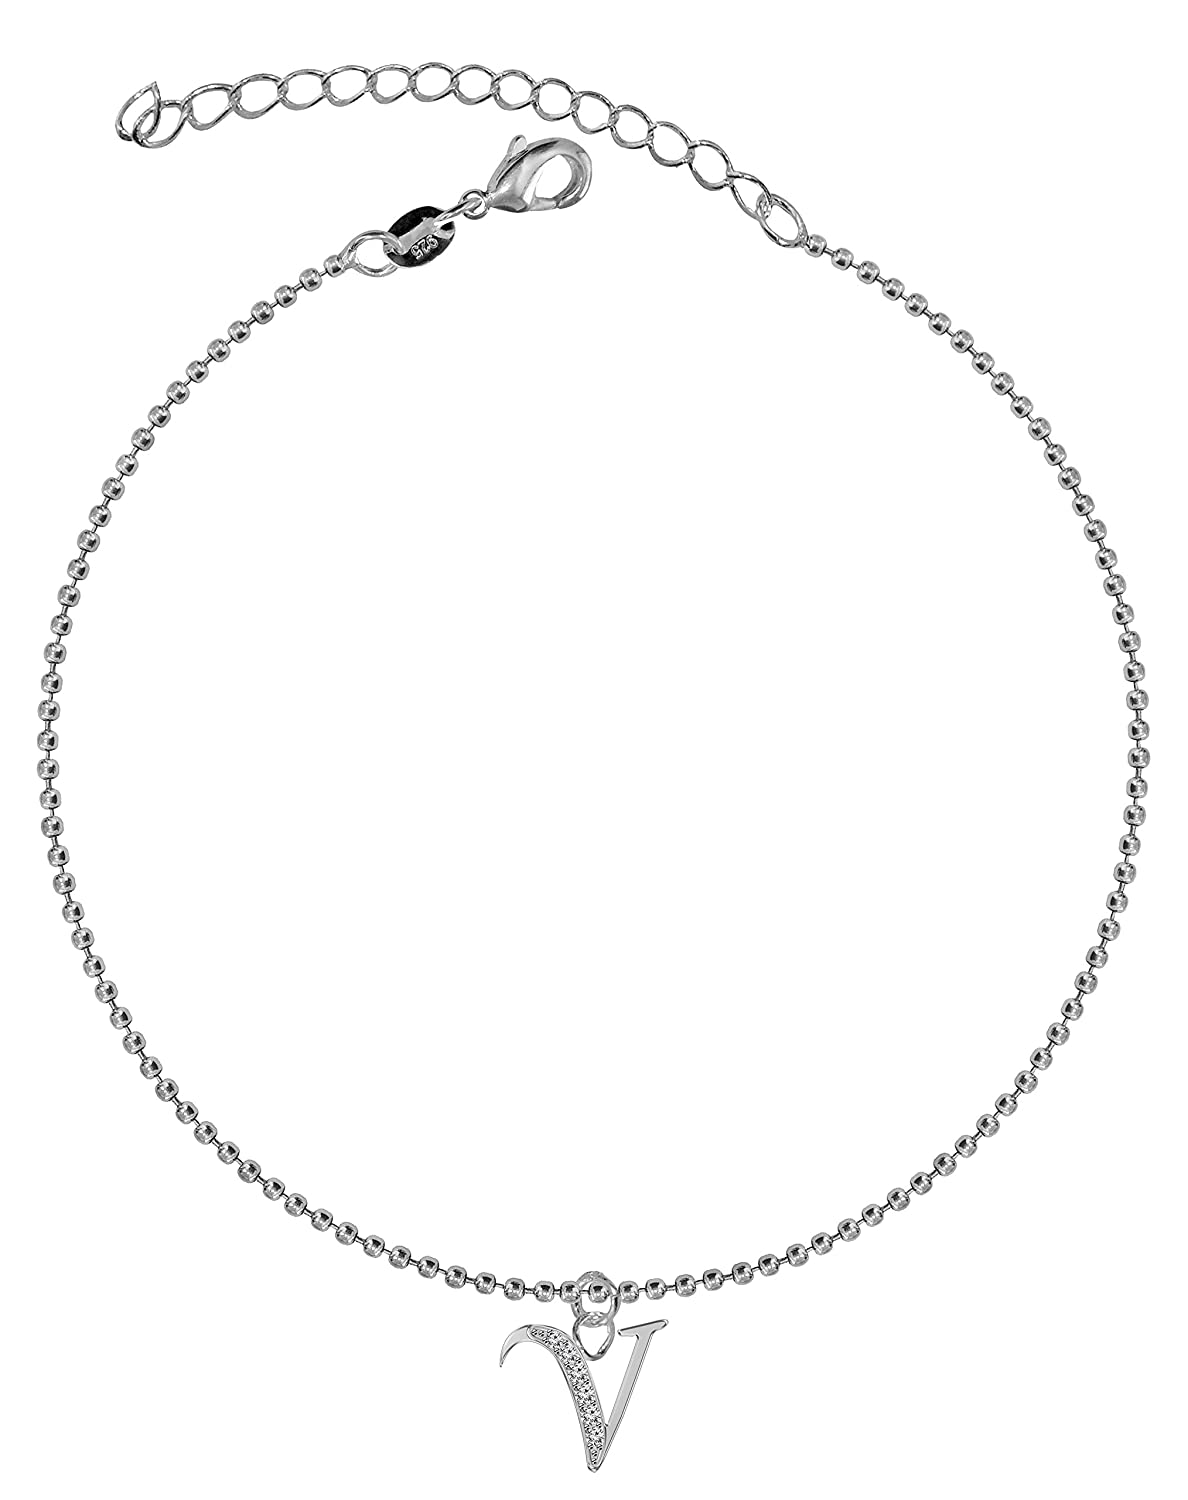 Dangle Anklet – argents-facile Letter To Wear, Suitable for Everyday Wear – We use the best quality CZ cristaux- Link 21 cm with 5 cm extension – Packed in a lovely velvet pouchette